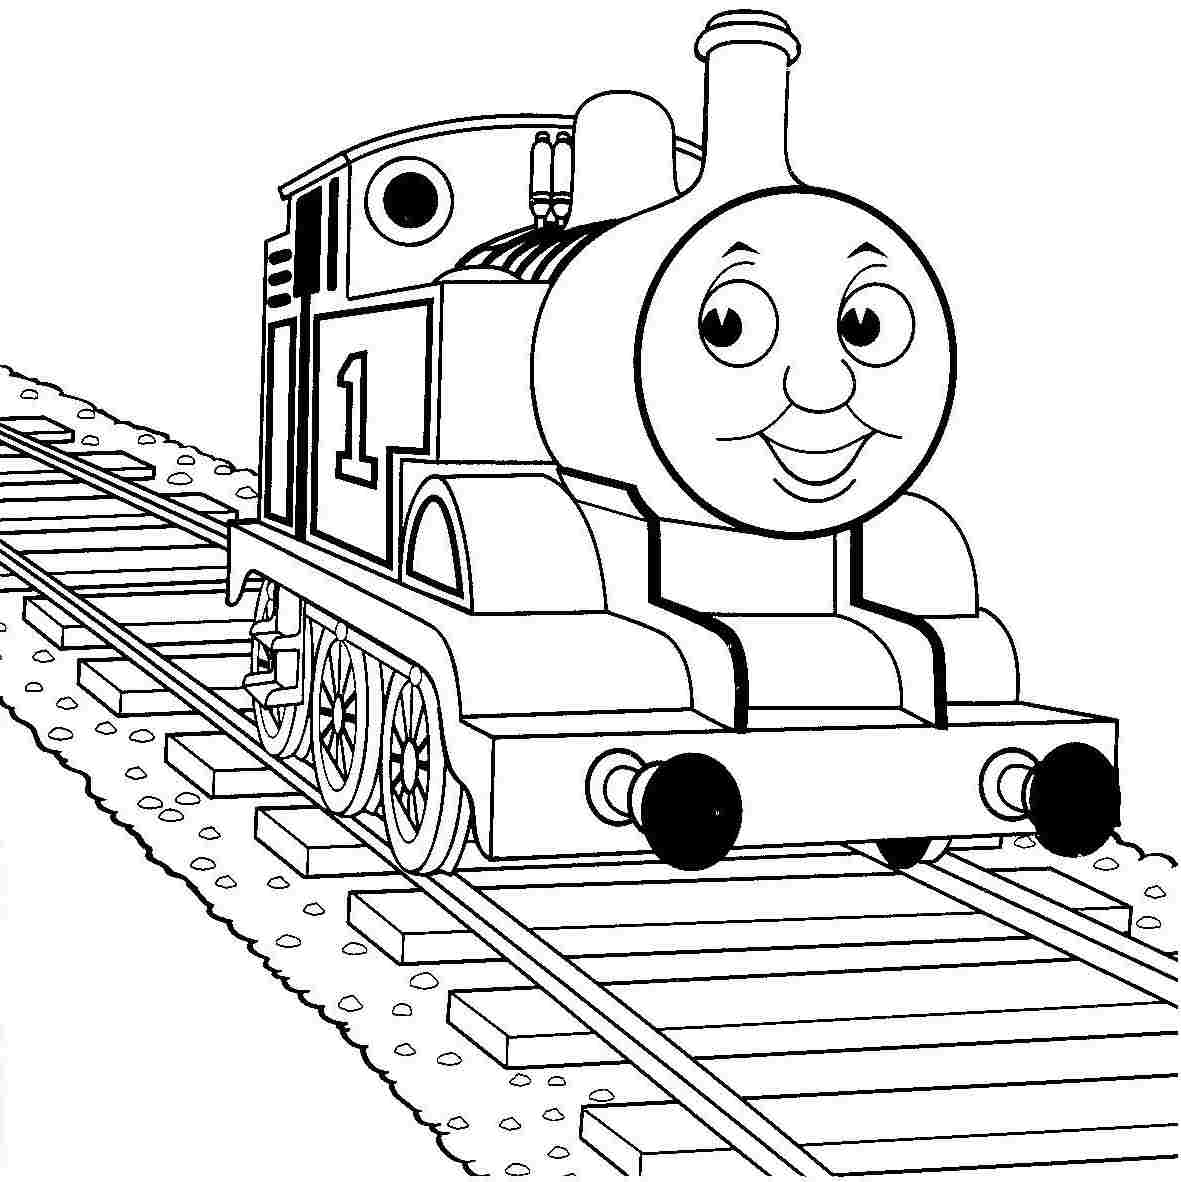 Coloring pages trains for kids - Coloring Pictures Thomas The Train Printable Coloring Pages